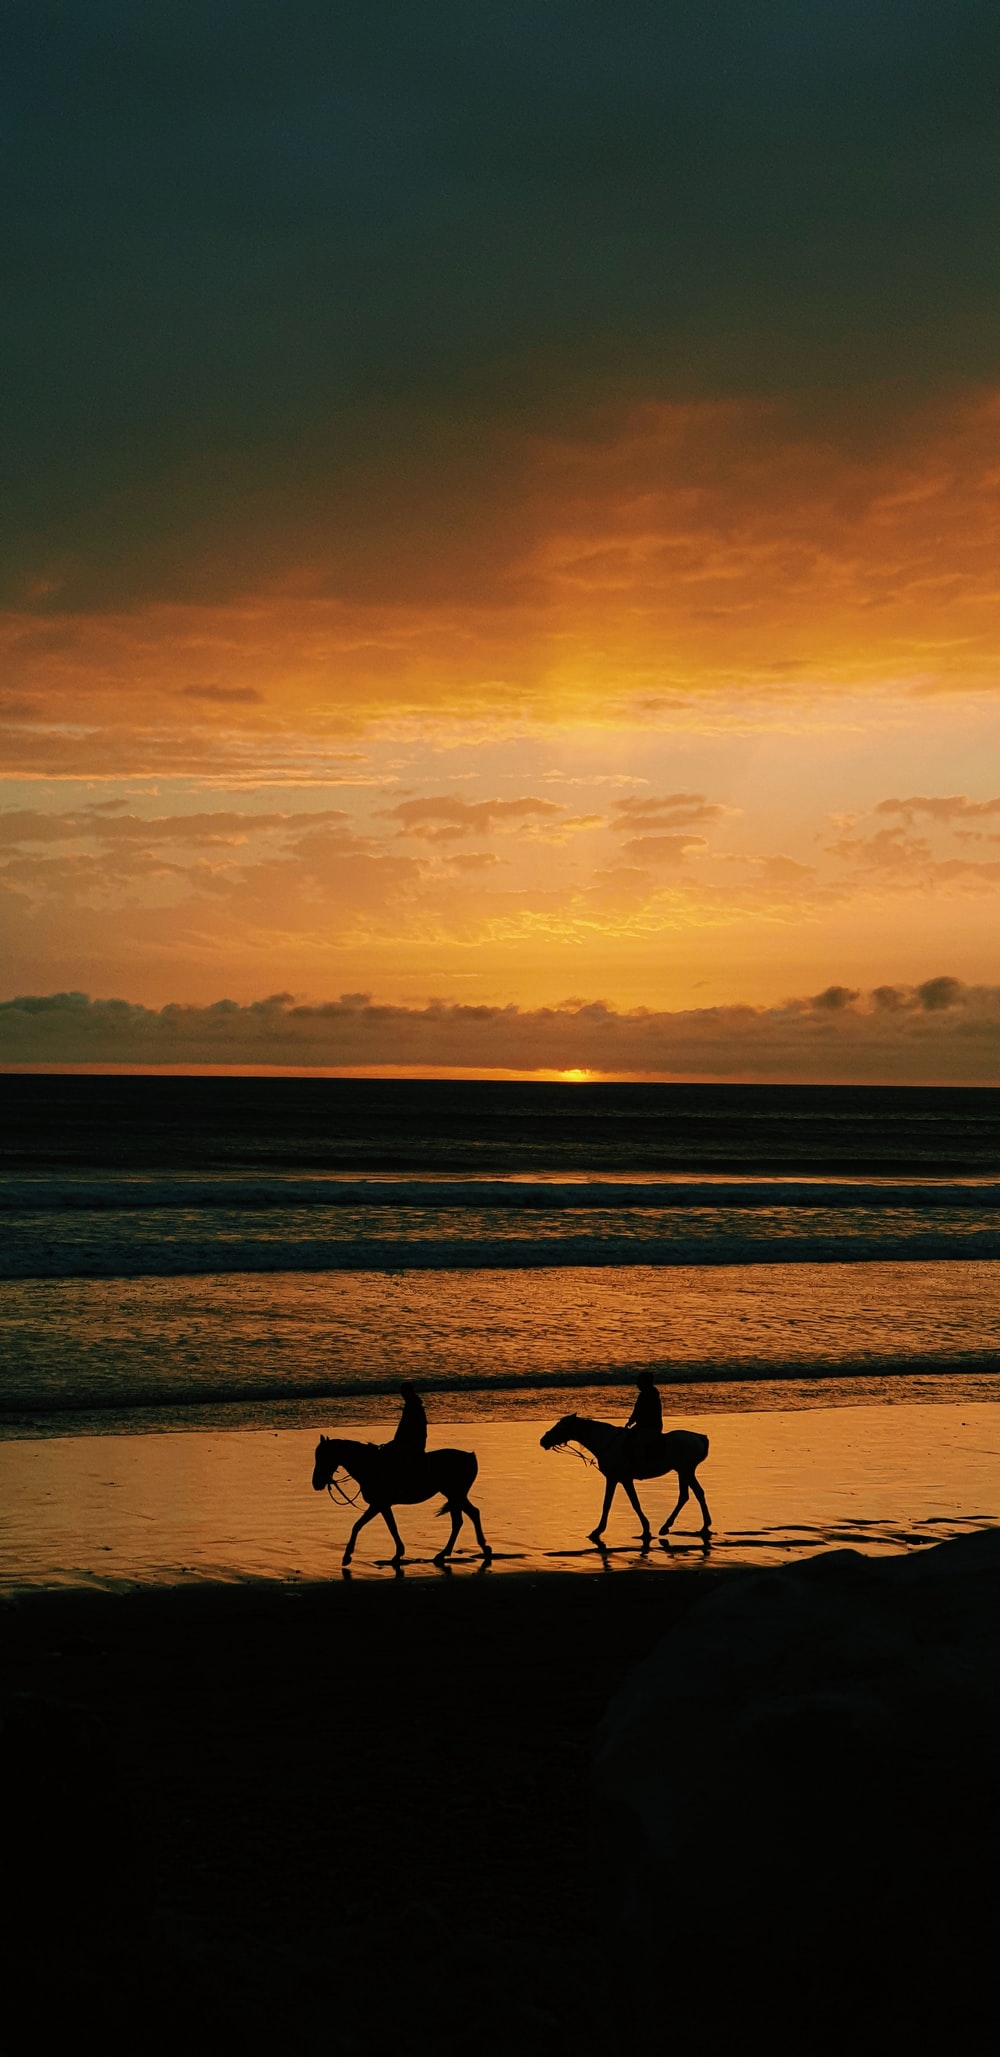 silhouette of 2 person walking on beach during sunset